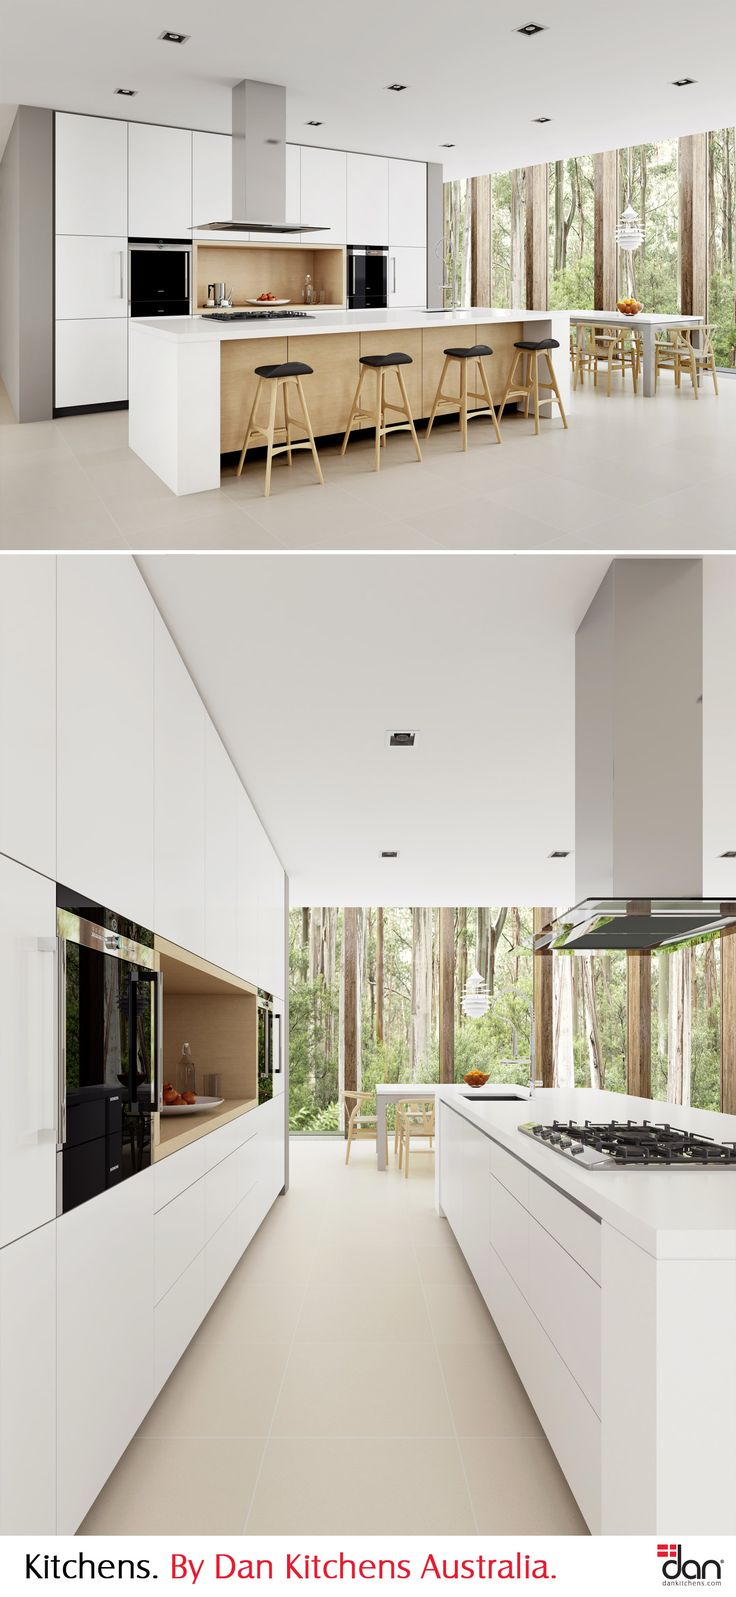 Minimalist says it all with this design. Sleek white joinery and bold proportions are juxtaposed by soft timber veneer highlights and the natural scenery outside. Integrated handles and motorised drawers assist in giving this design a simple, yet sophisticated look. Wonderfully decorated with Danish furniture. #DanKitchensAus #ModernKitchens